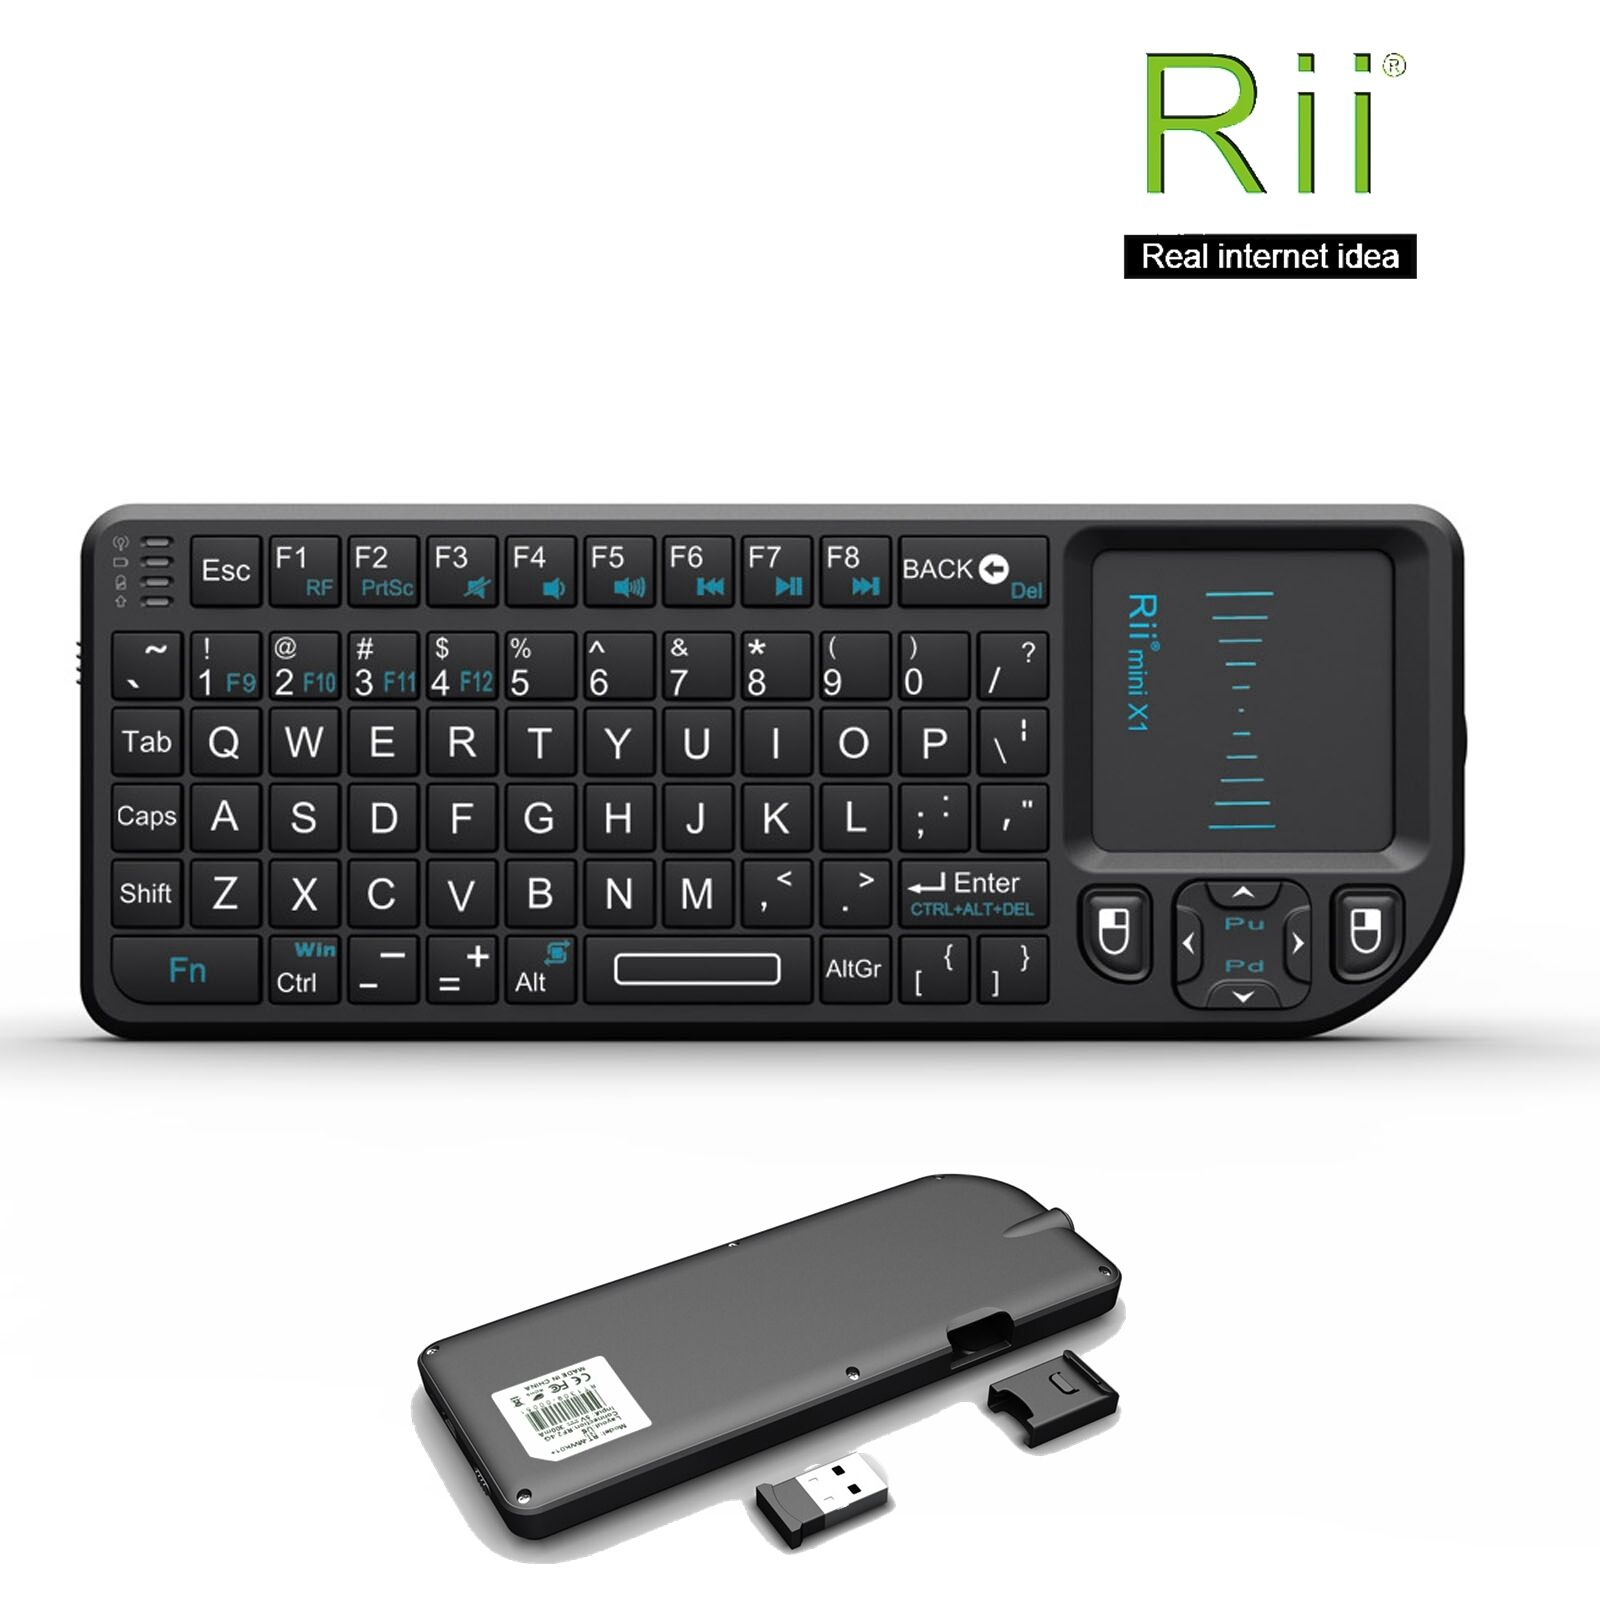 Besay Mini i10 2.4G Air Mouse Wireless Keyboard with Touchpad Black